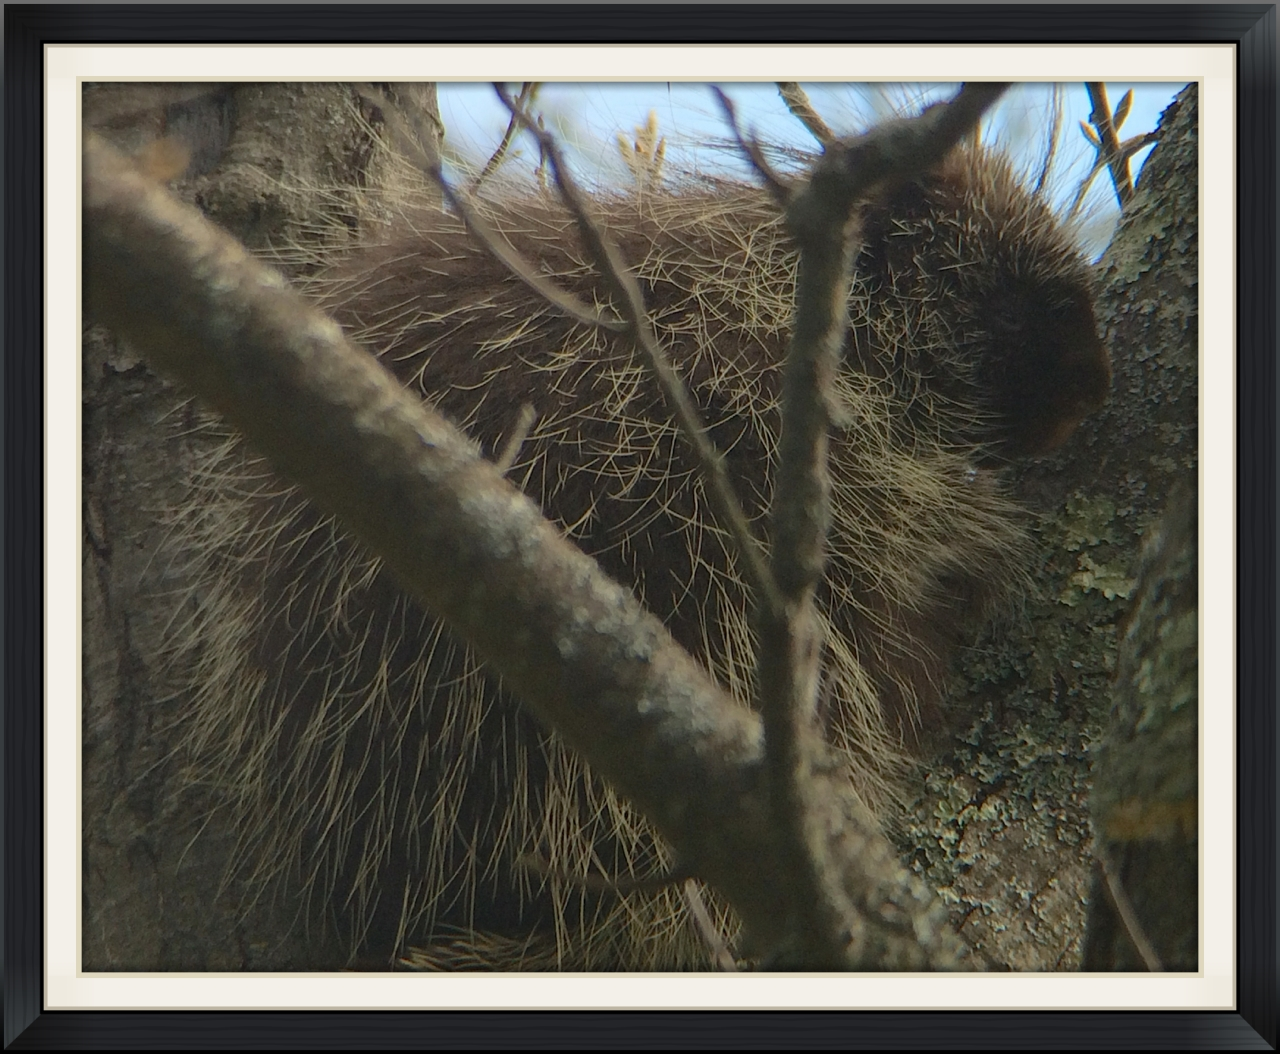 Porcupine found on the AuSable River Valley Trip.